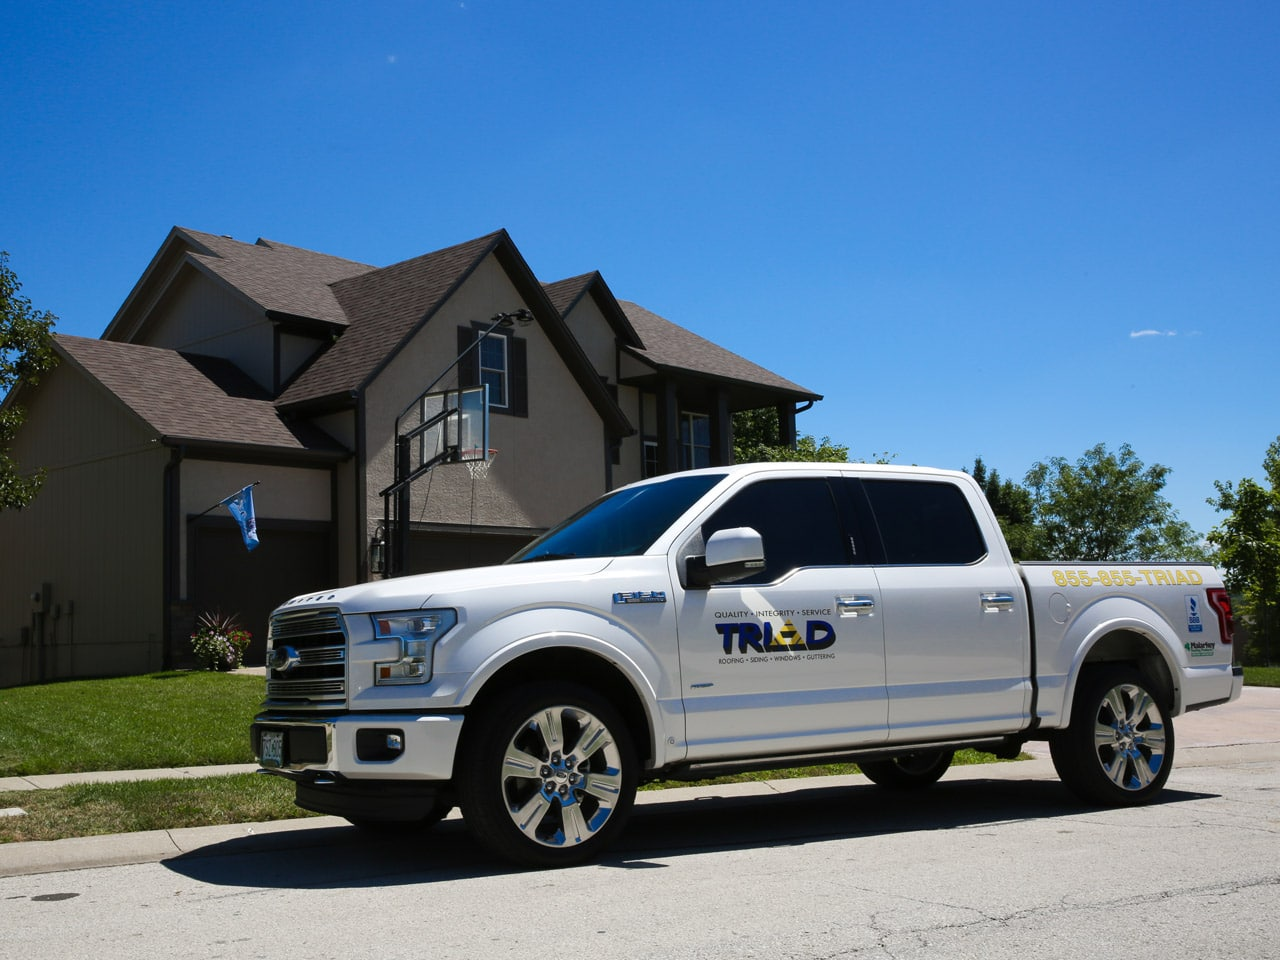 Roofing | Triad Roofing in Kansas and Missouri